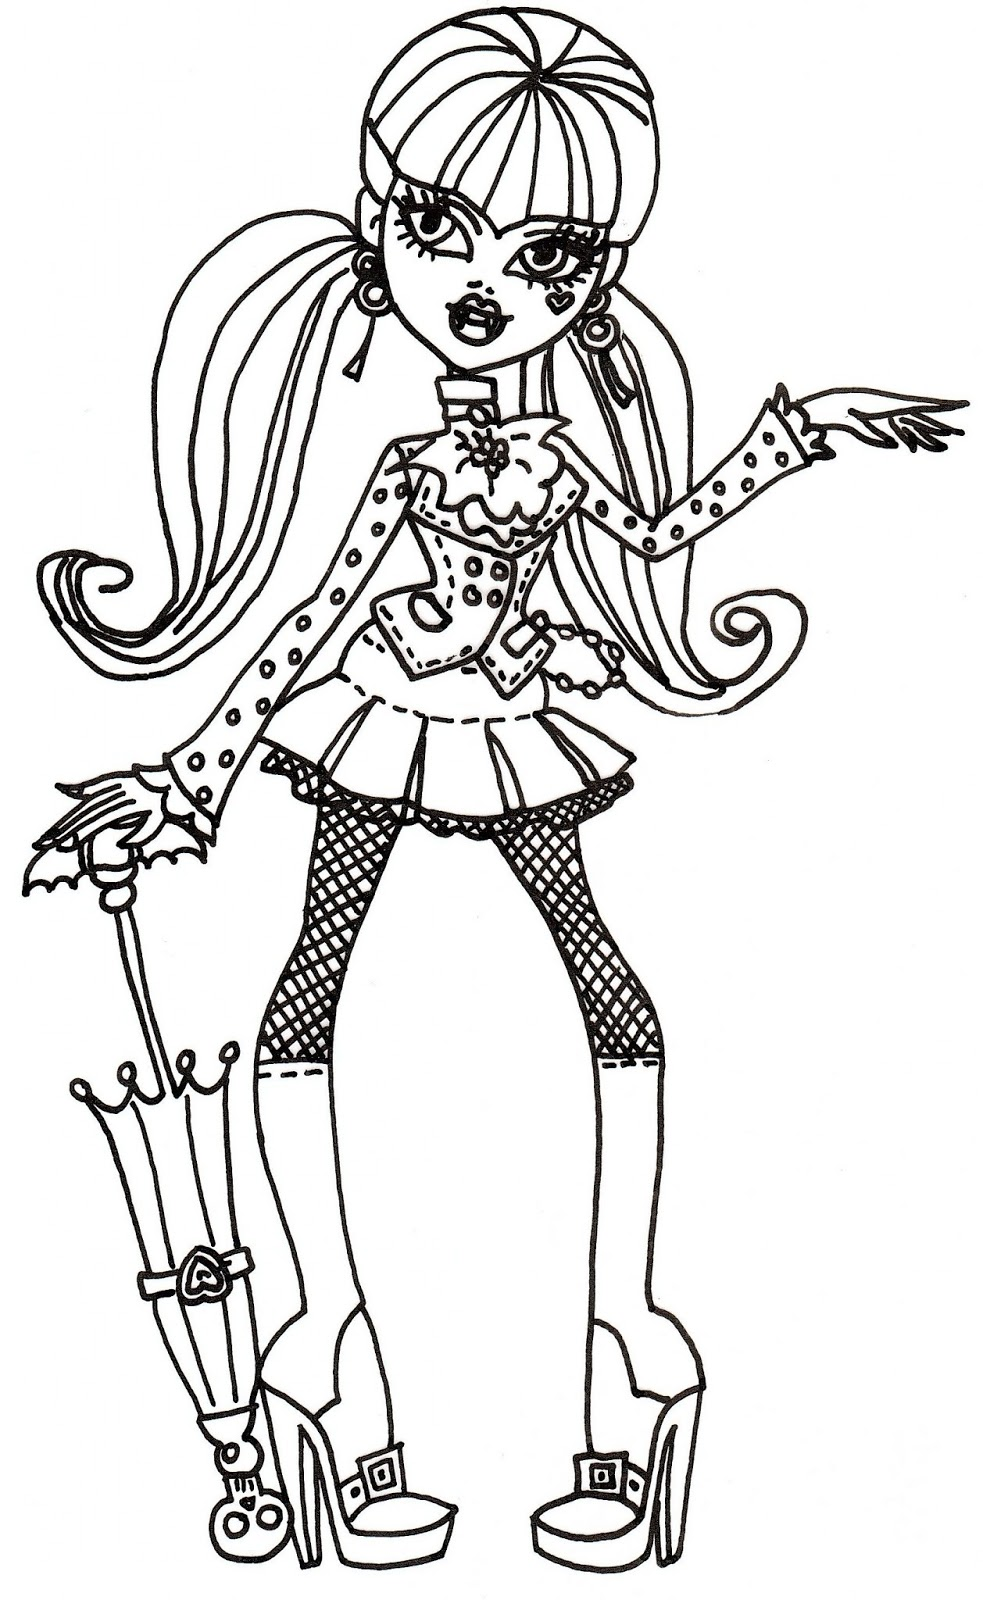 free draculaura coloring sheet - Draculaura Coloring Pages